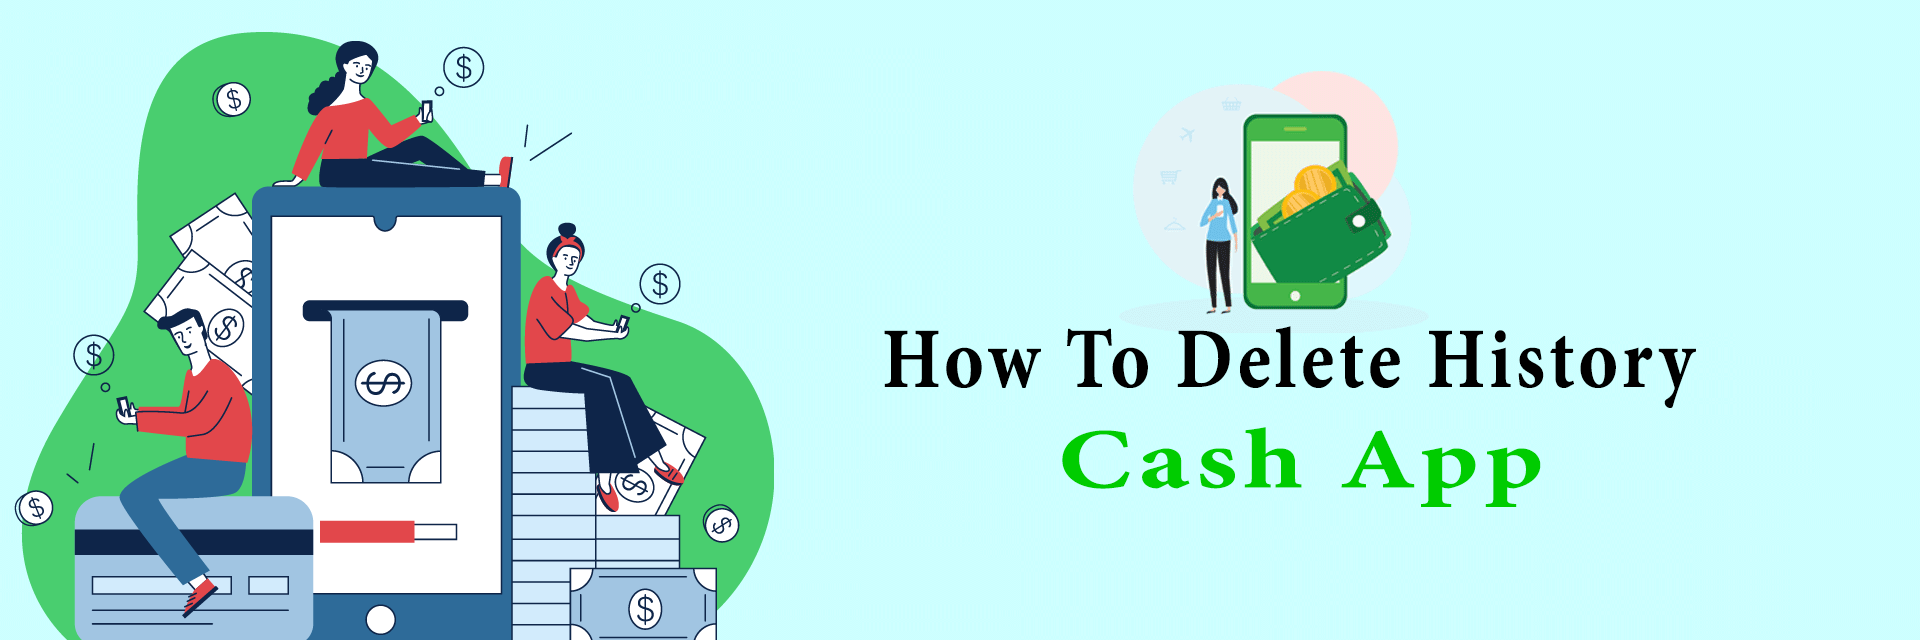 How To Delete Cash App History,